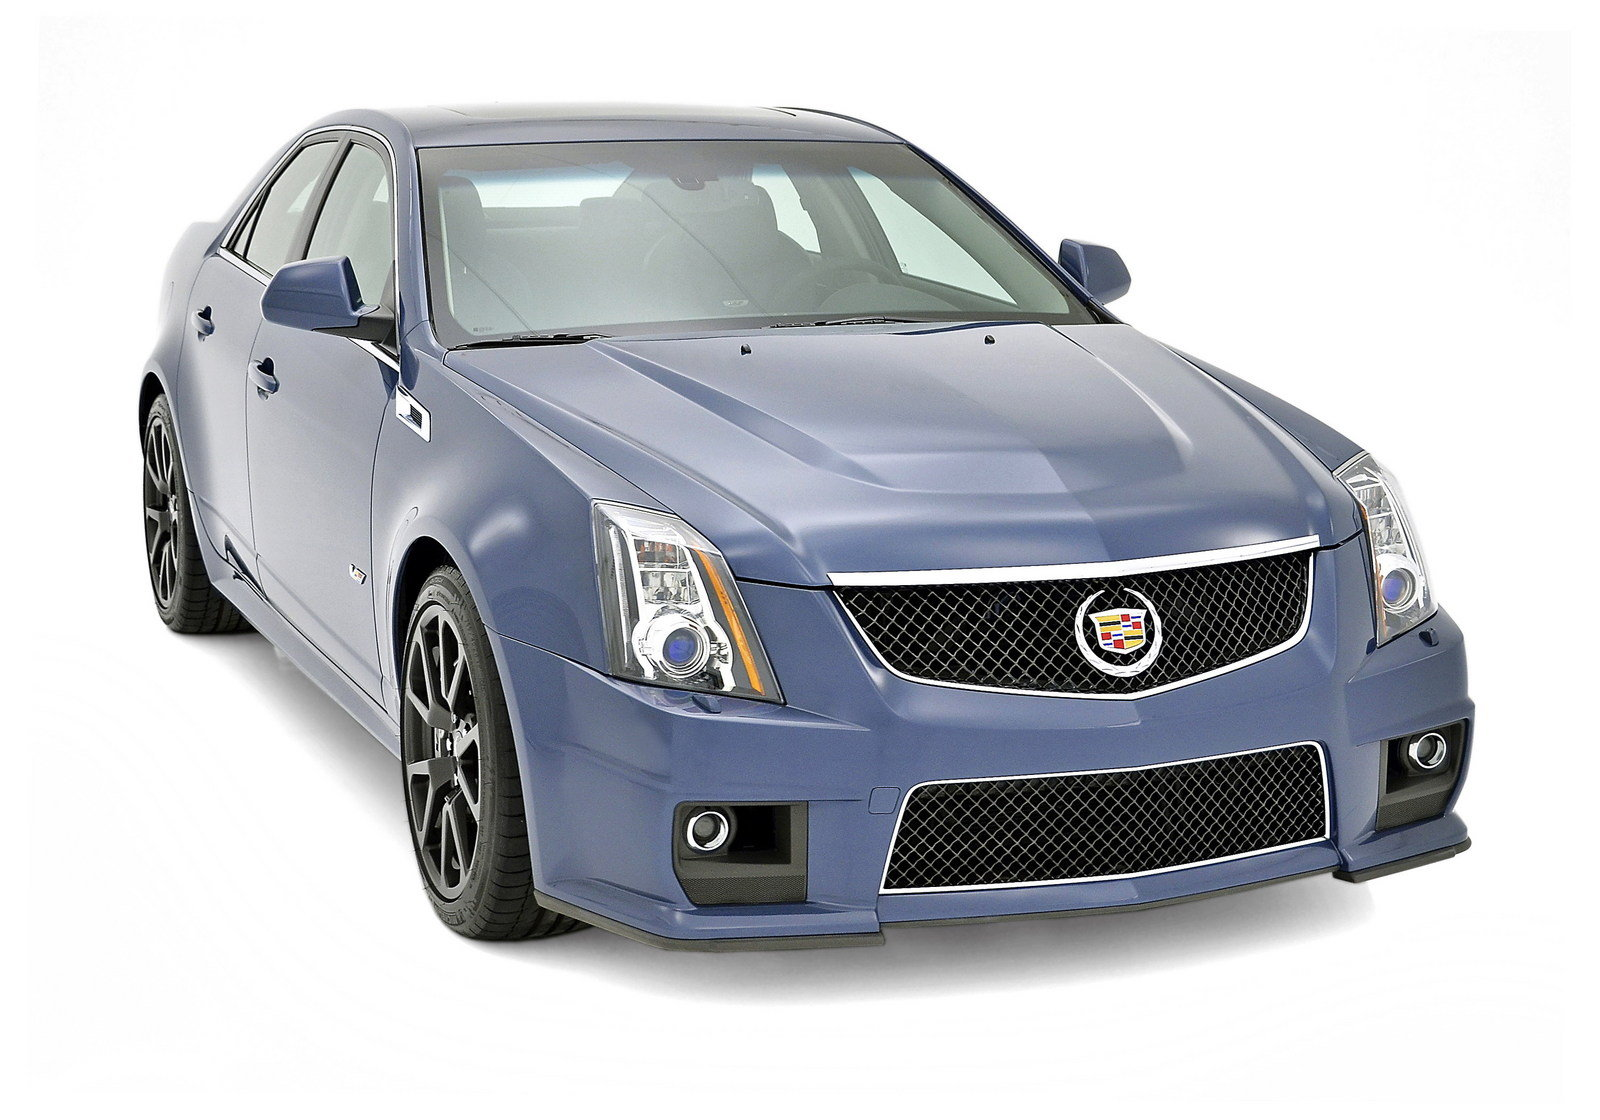 2013 cadillac cts v silver frost and stealth blue limited edition review top speed. Black Bedroom Furniture Sets. Home Design Ideas